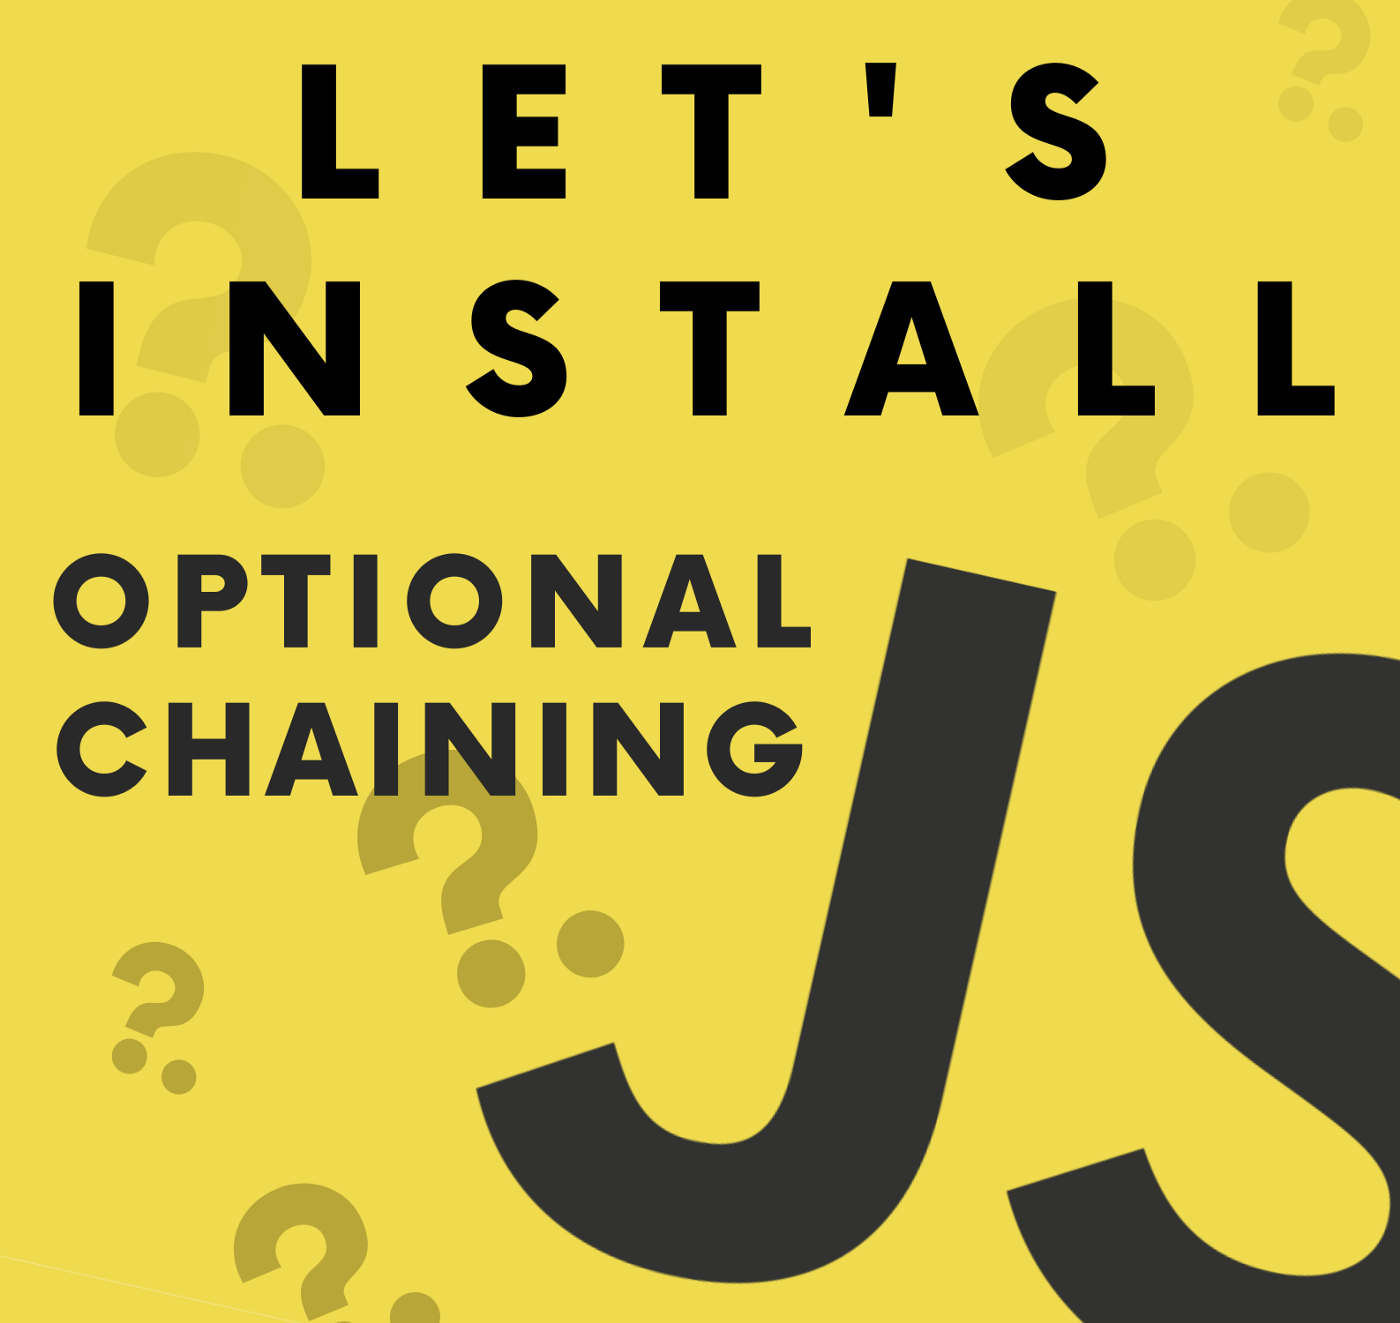 Let's Install Optional Chaining in your project| @thawinwats